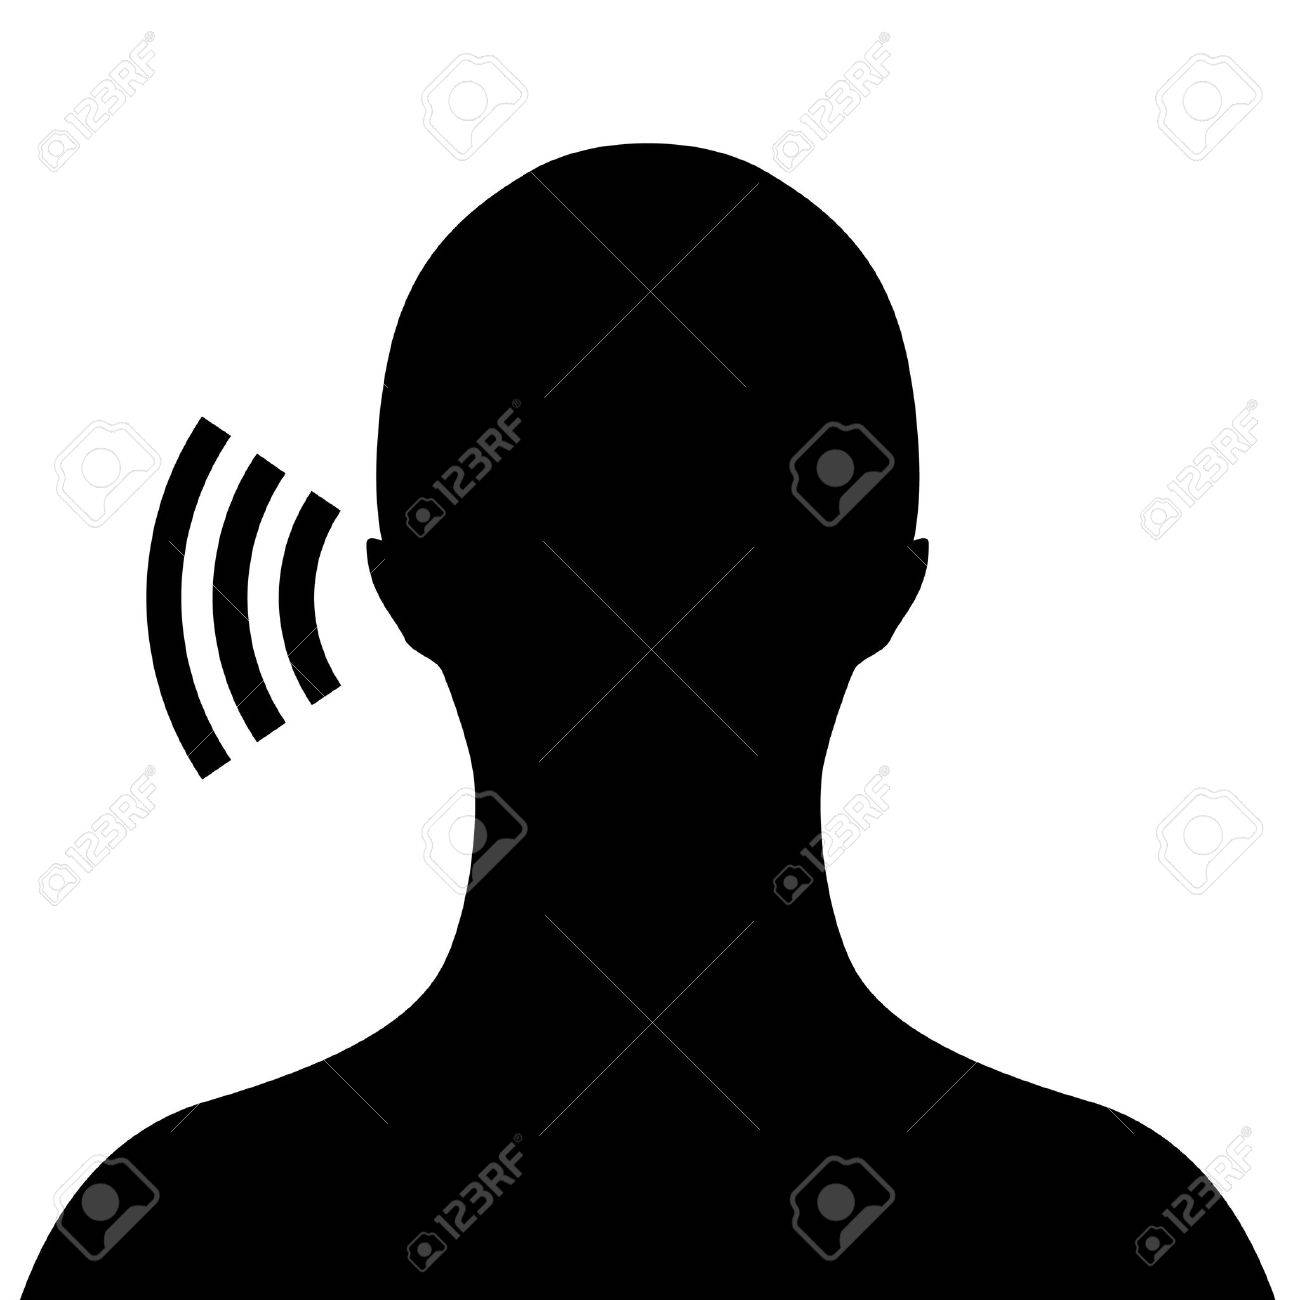 Listen Ear Icon Ear Icon Png Ear Icon Png l